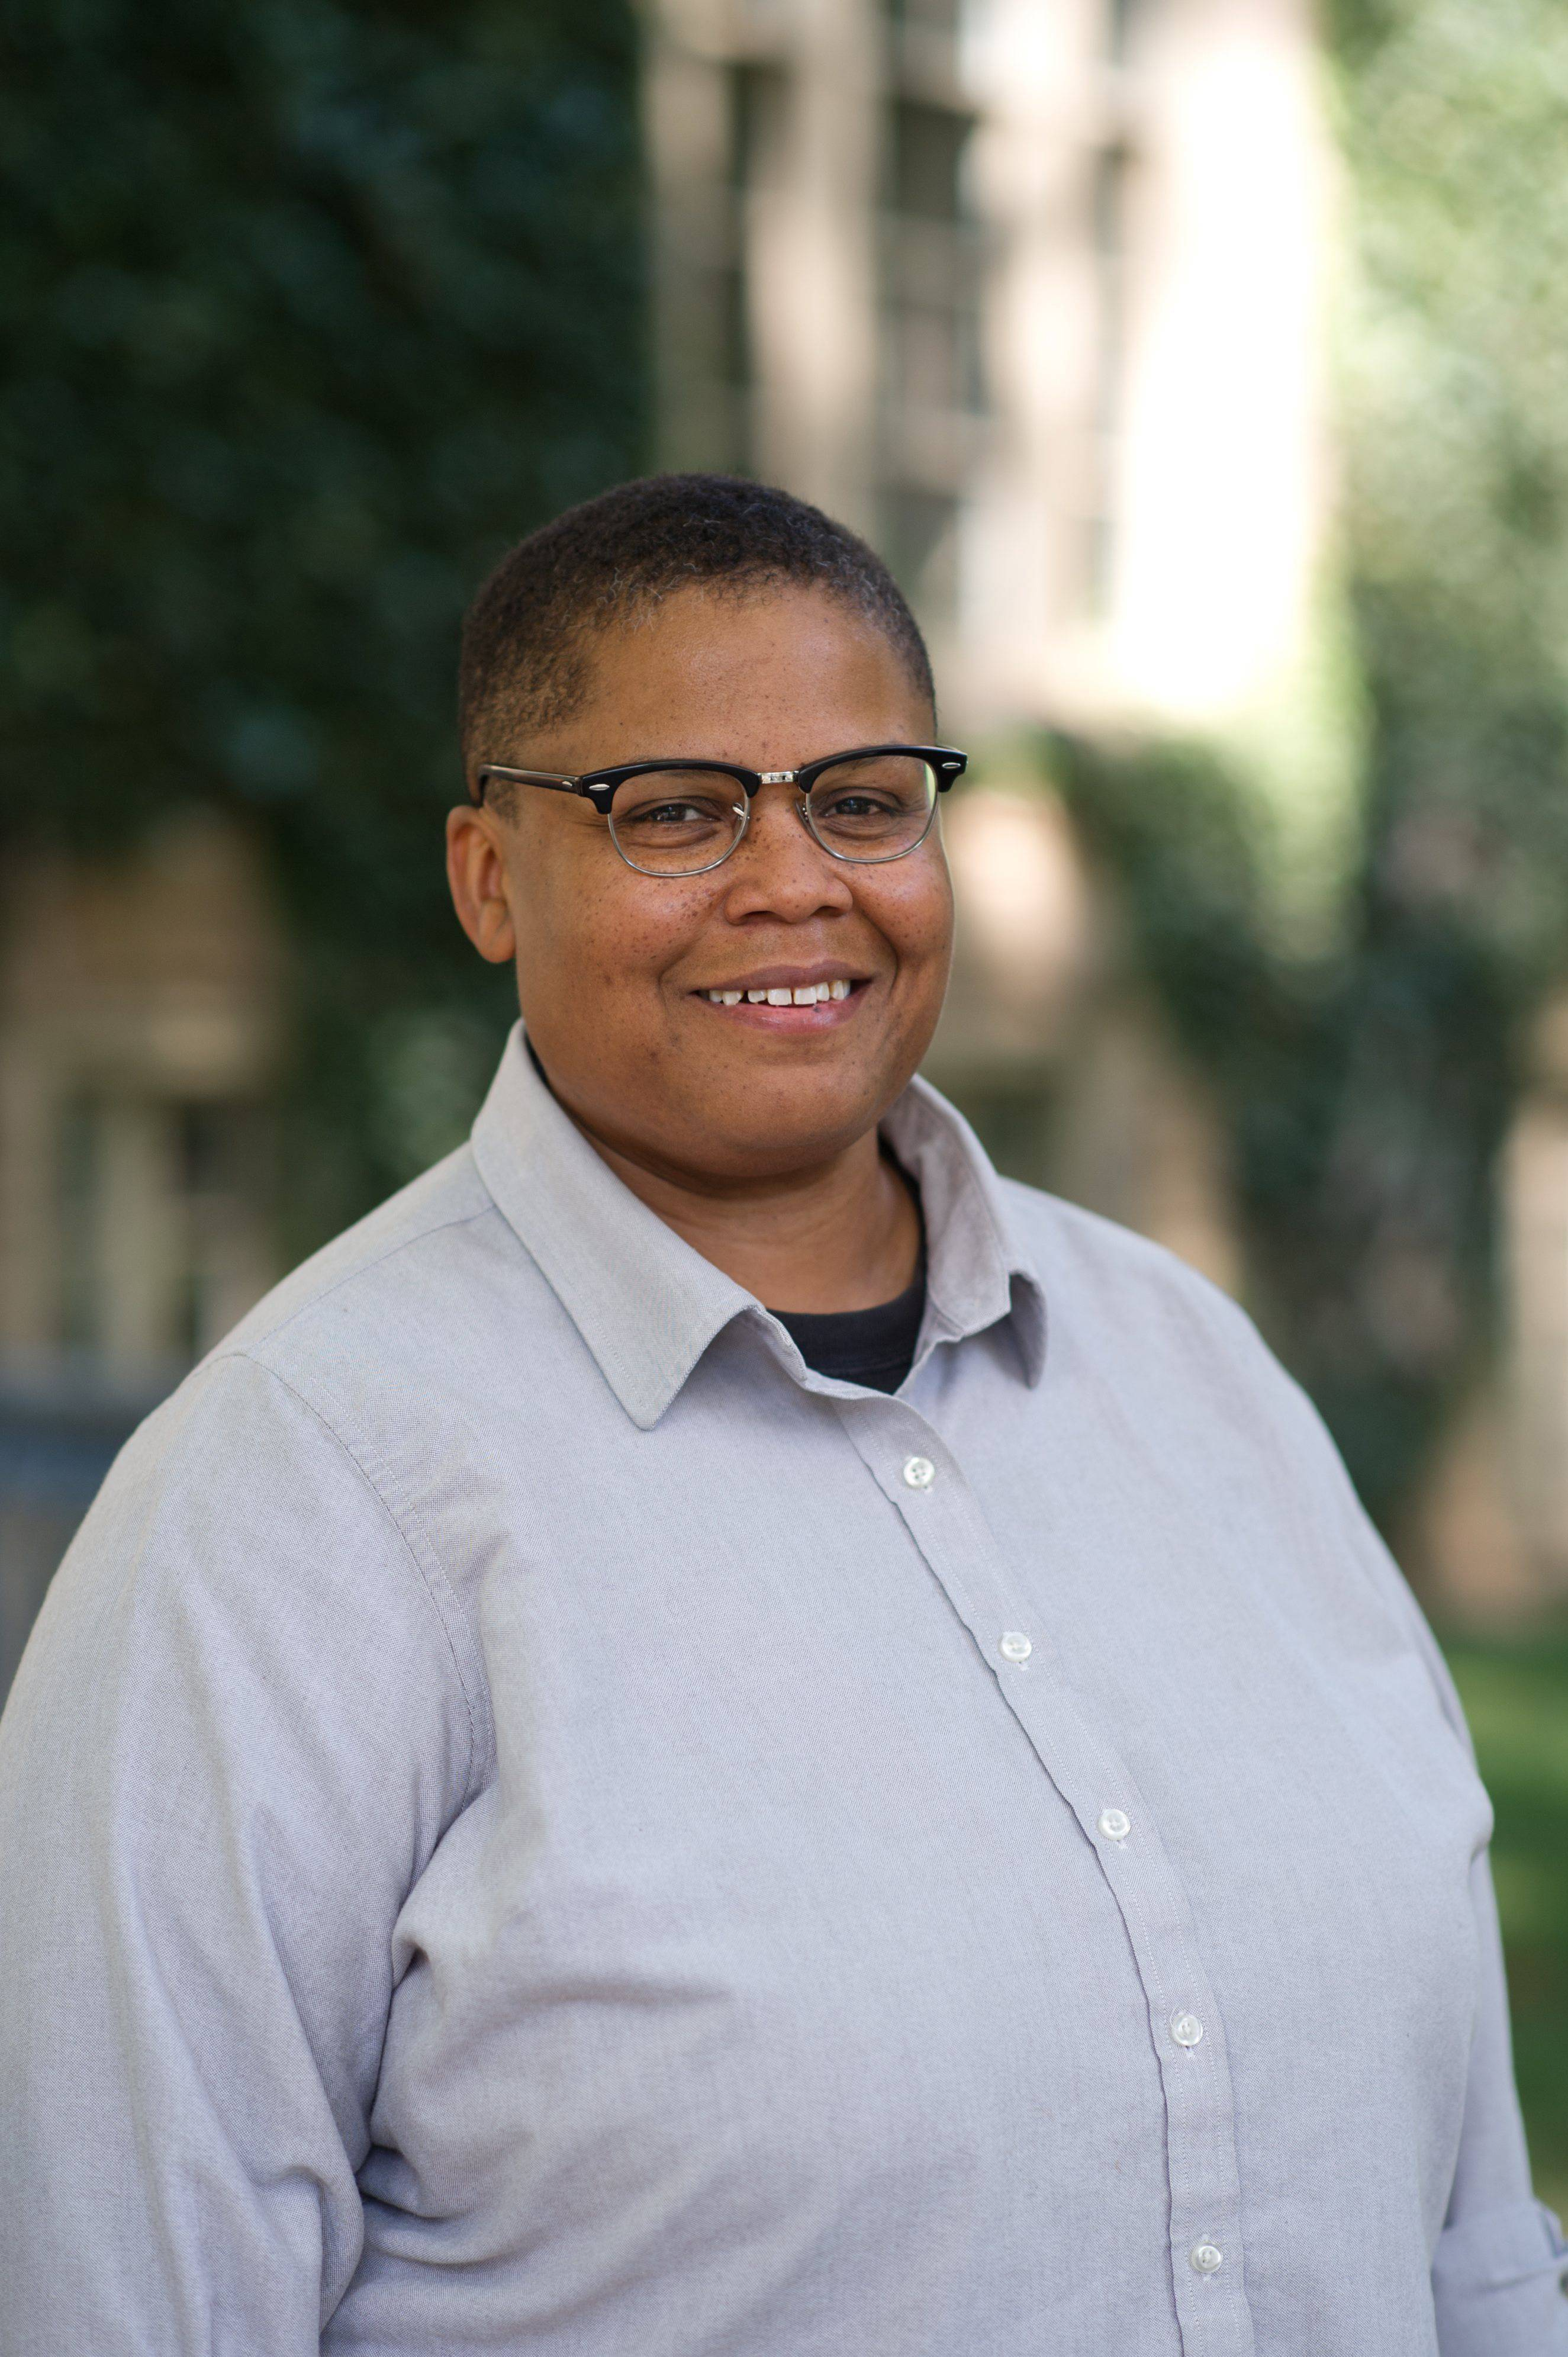 Dr. Keeanga-Yamahtta Taylor, Princeton Researcher - Keeanga-Yamahtta Taylor is invested in researching race and public policy, specifically as it relates to American housing policies. Dr. Taylor is currently working on a manuscript about the federal government's promotion of single-family homeownership in Black communities after the urban rebellions of the 1960s.(Photo: Princeton University)